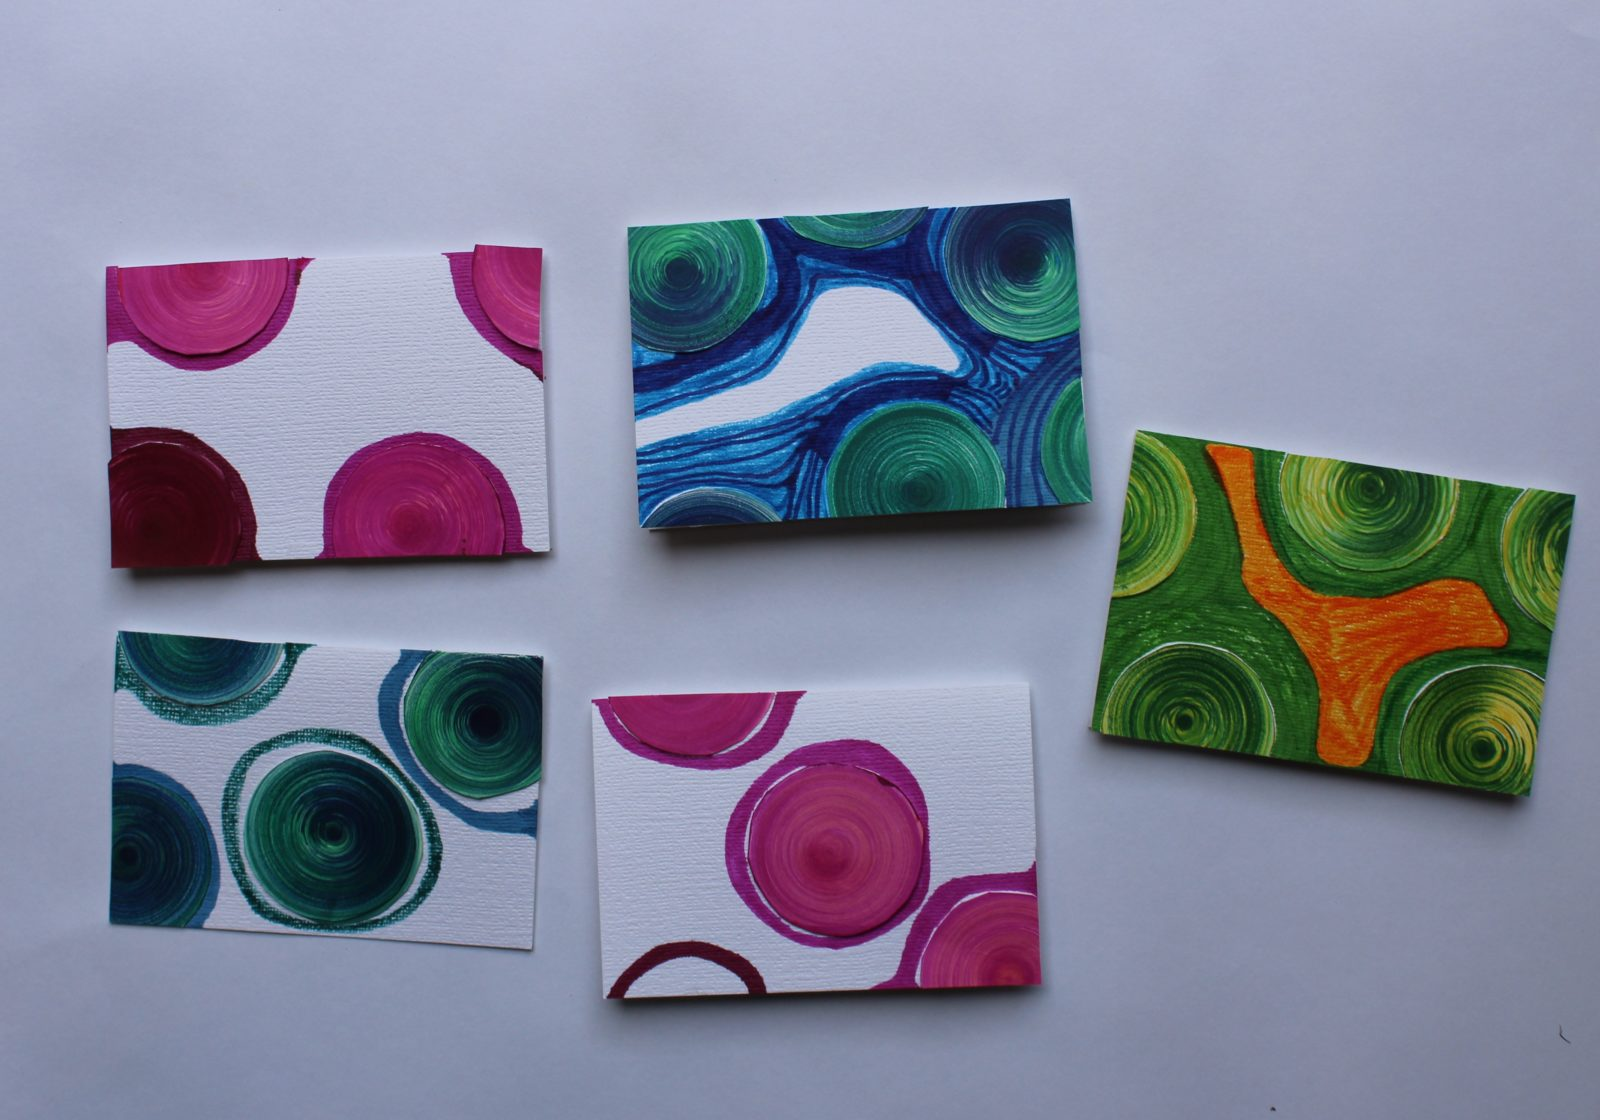 35649 || 5470 || Selection of greeting cards